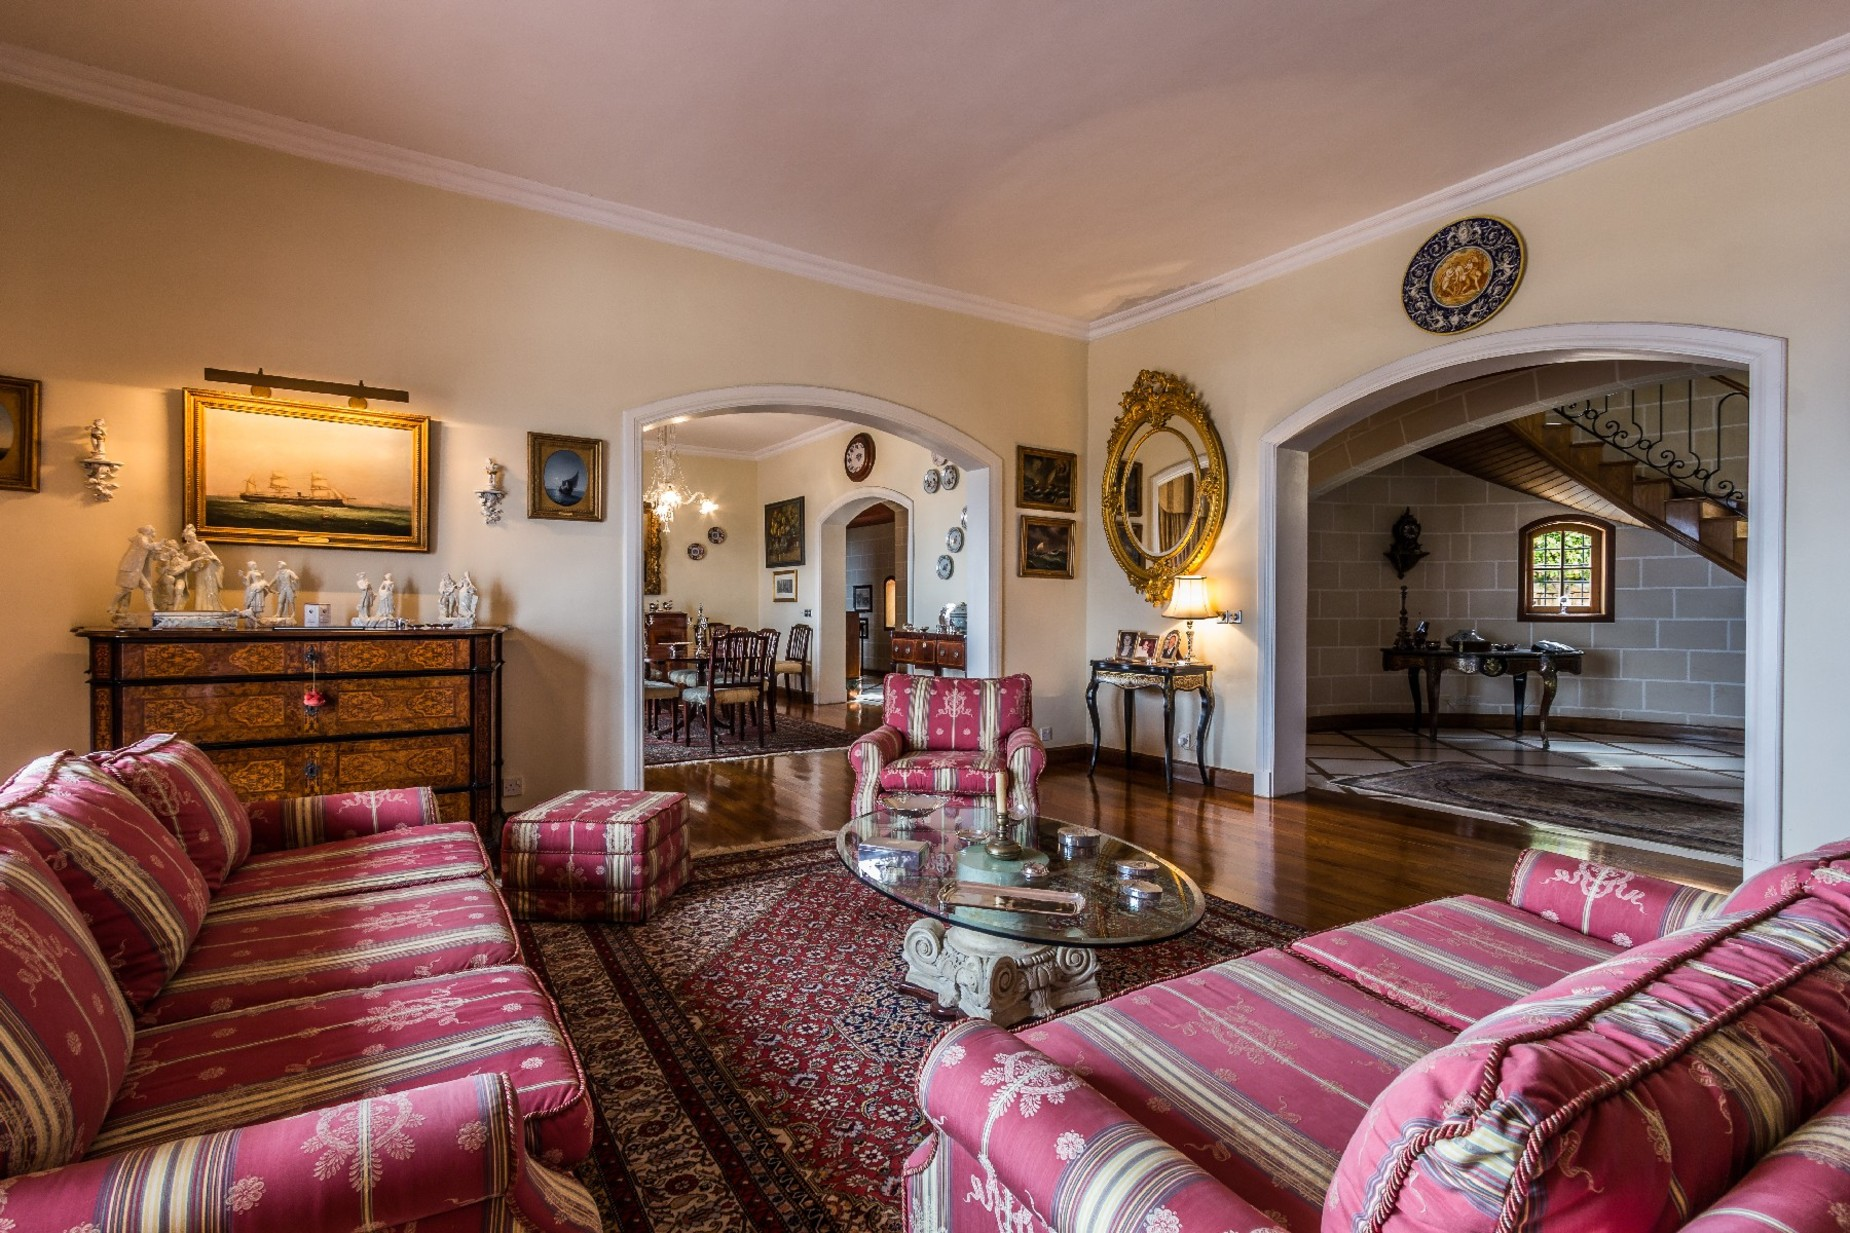 5 bed Villa For Sale in Madliena, Madliena - thumb 16